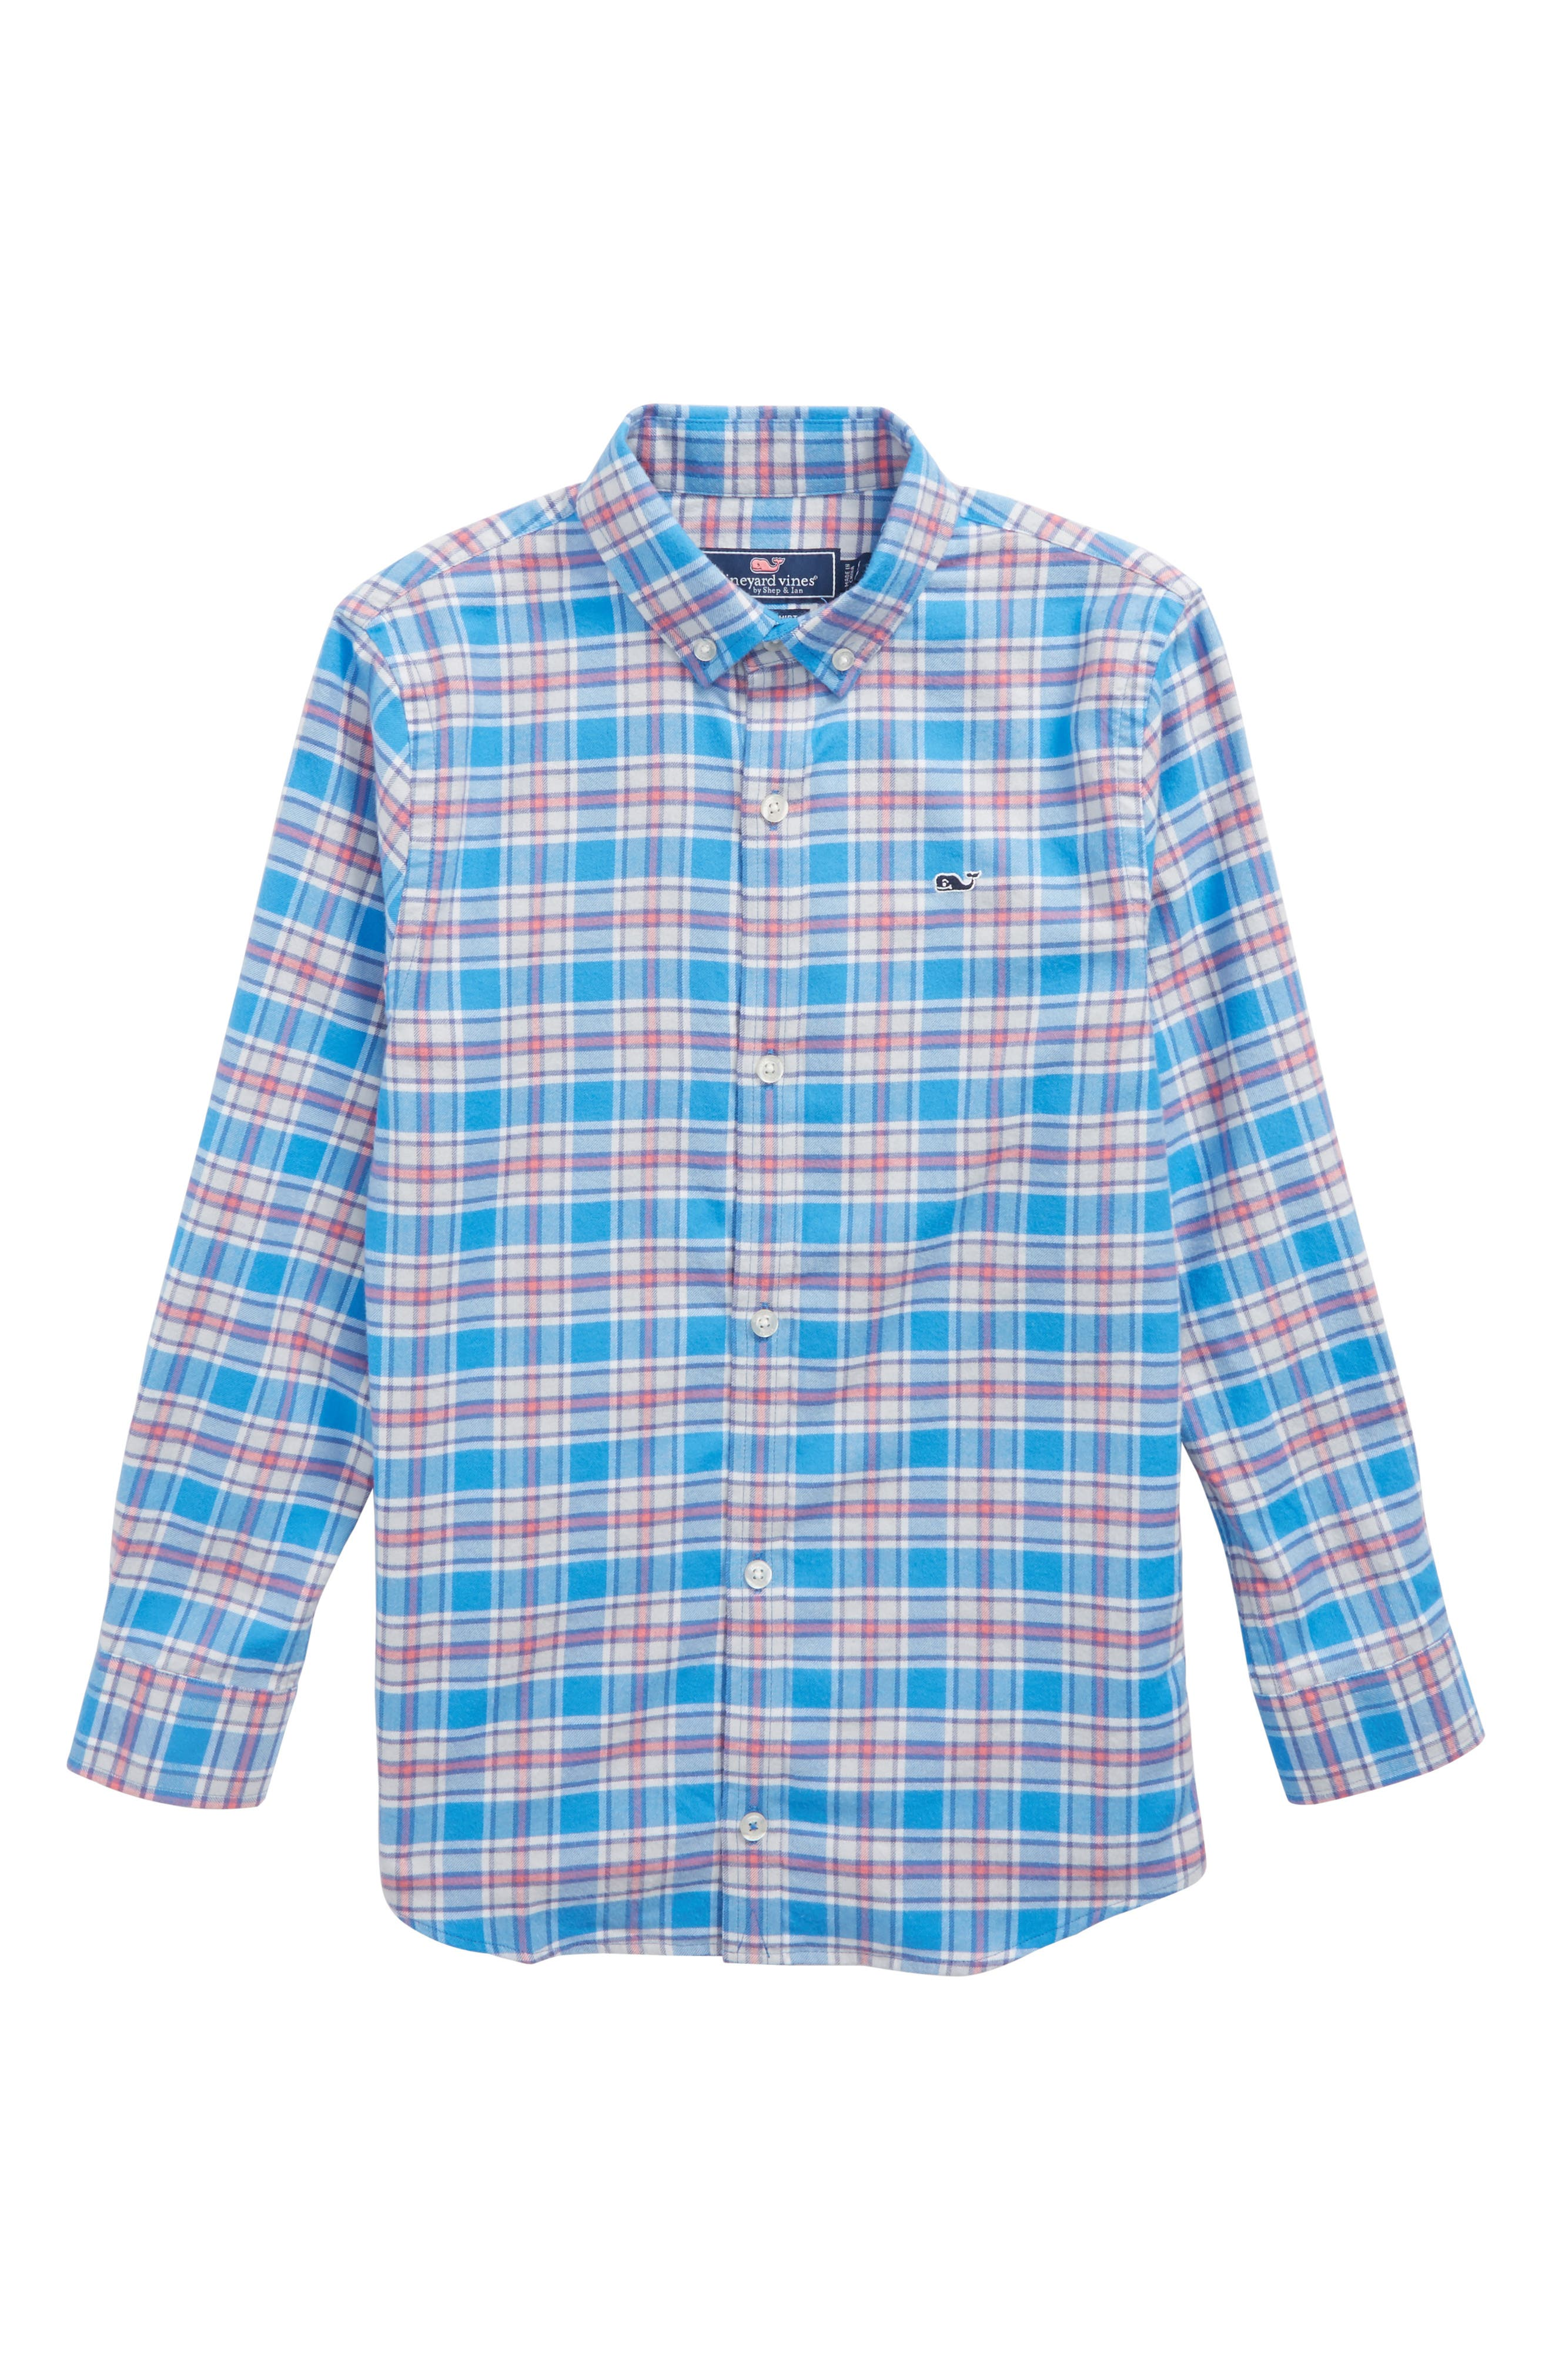 Sandy Point Plaid Whale Flannel Shirt,                         Main,                         color, Hull Blue